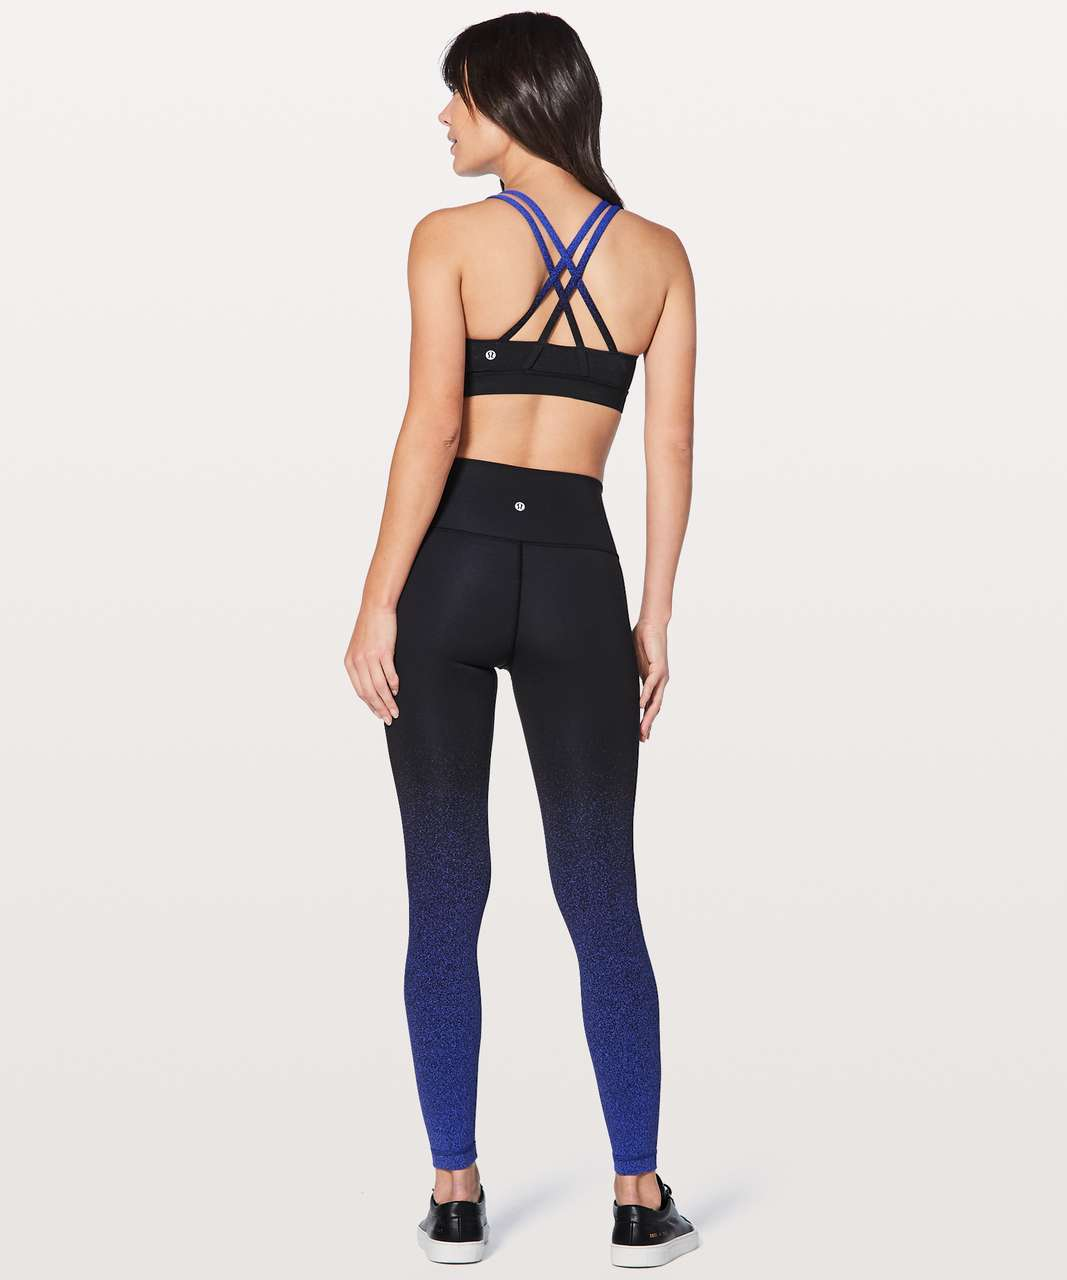 Lululemon Energy Bra Ombre Speckle - Ombre Speckle Stop Jacquard Interlock Power Luxtreme Black Blazer Blue